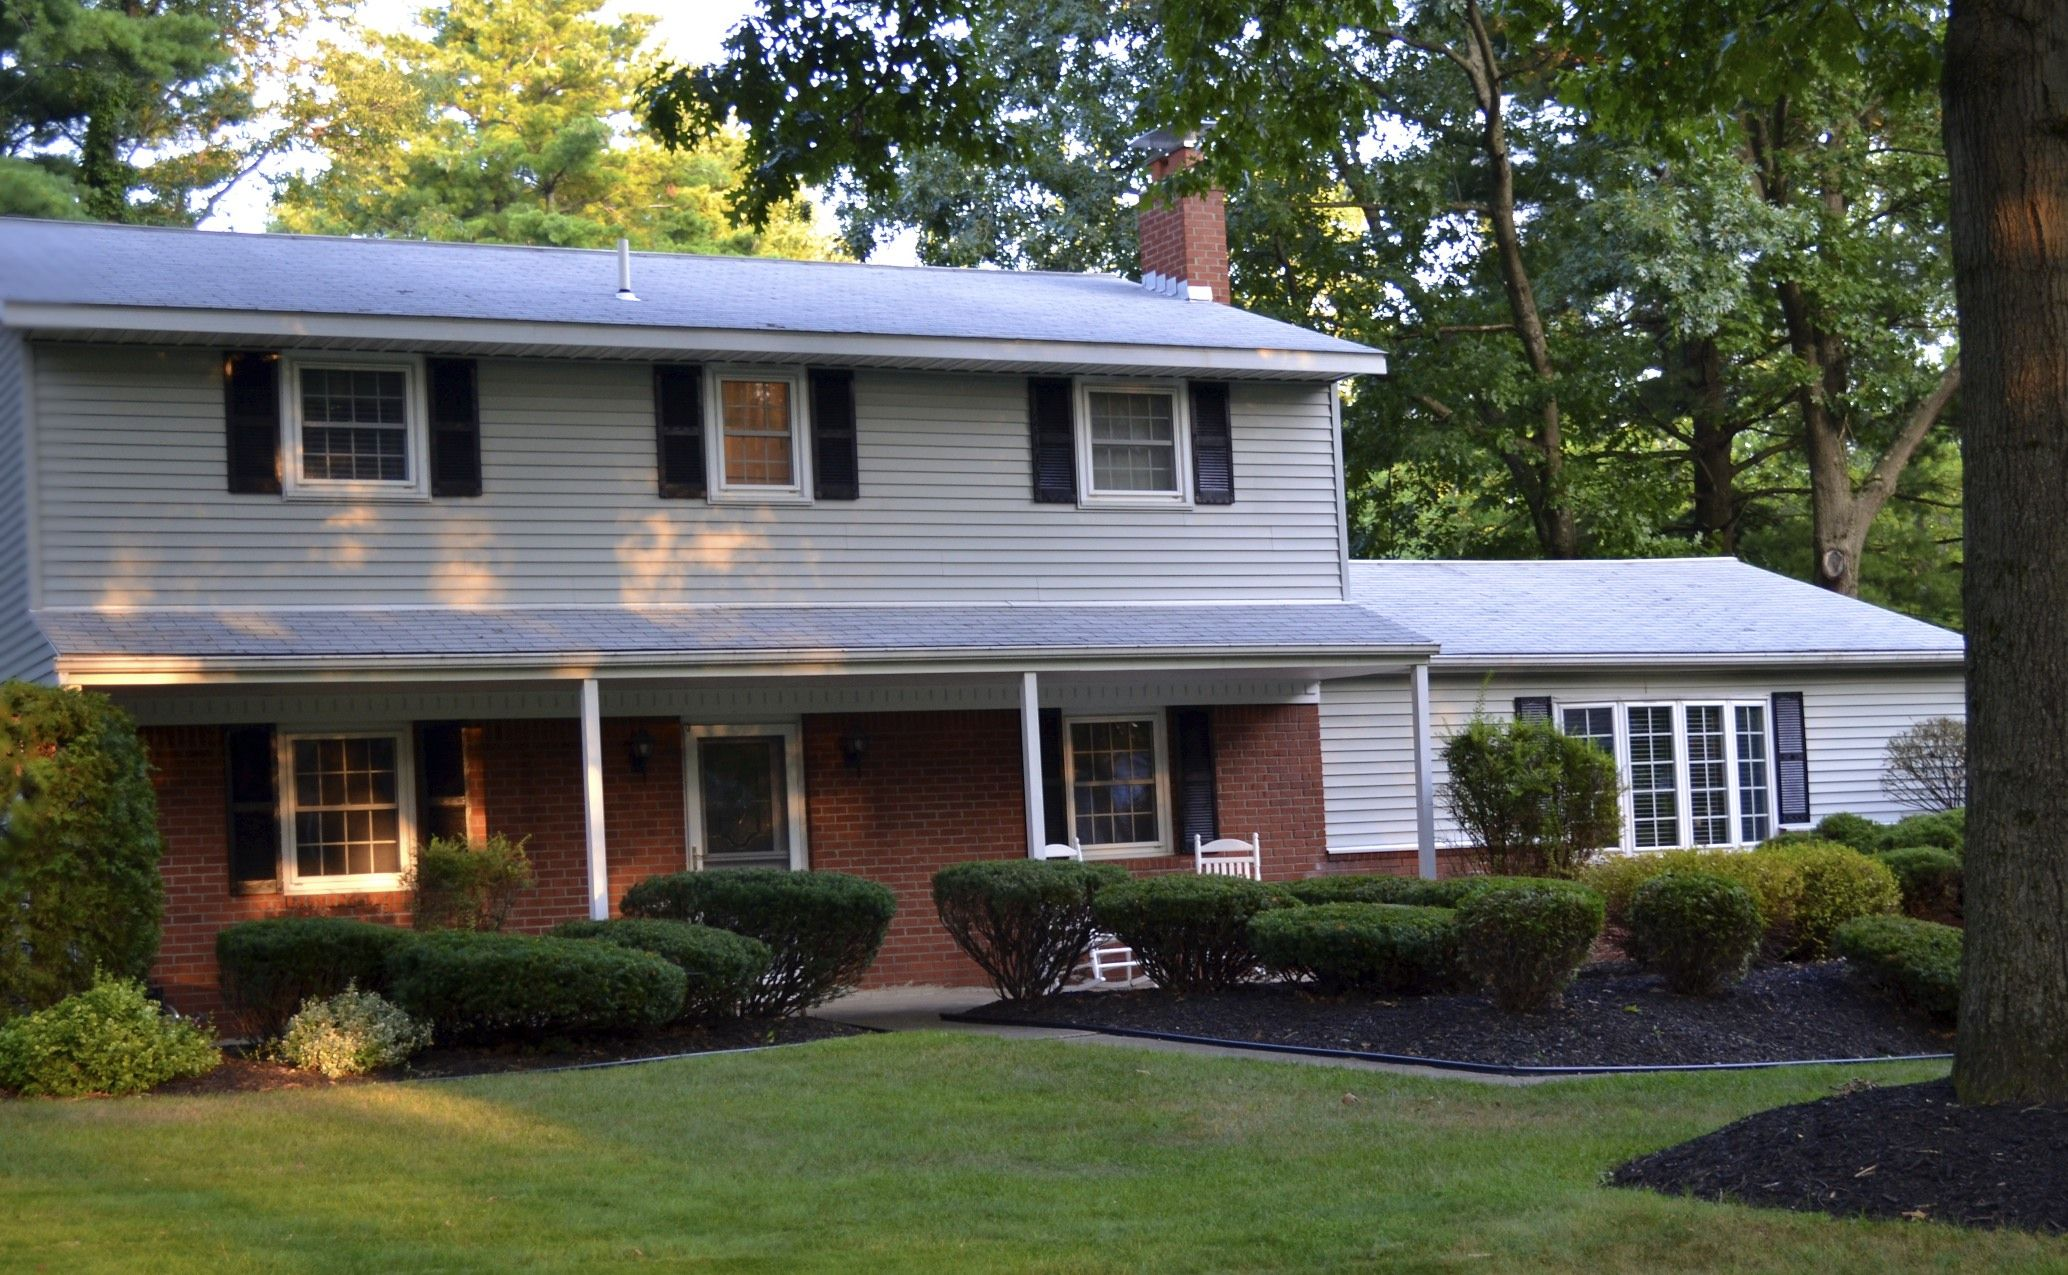 Black Roof Cream Siding Red Brick Google Search Brick Siding Exterior House Colors Shutters Exterior